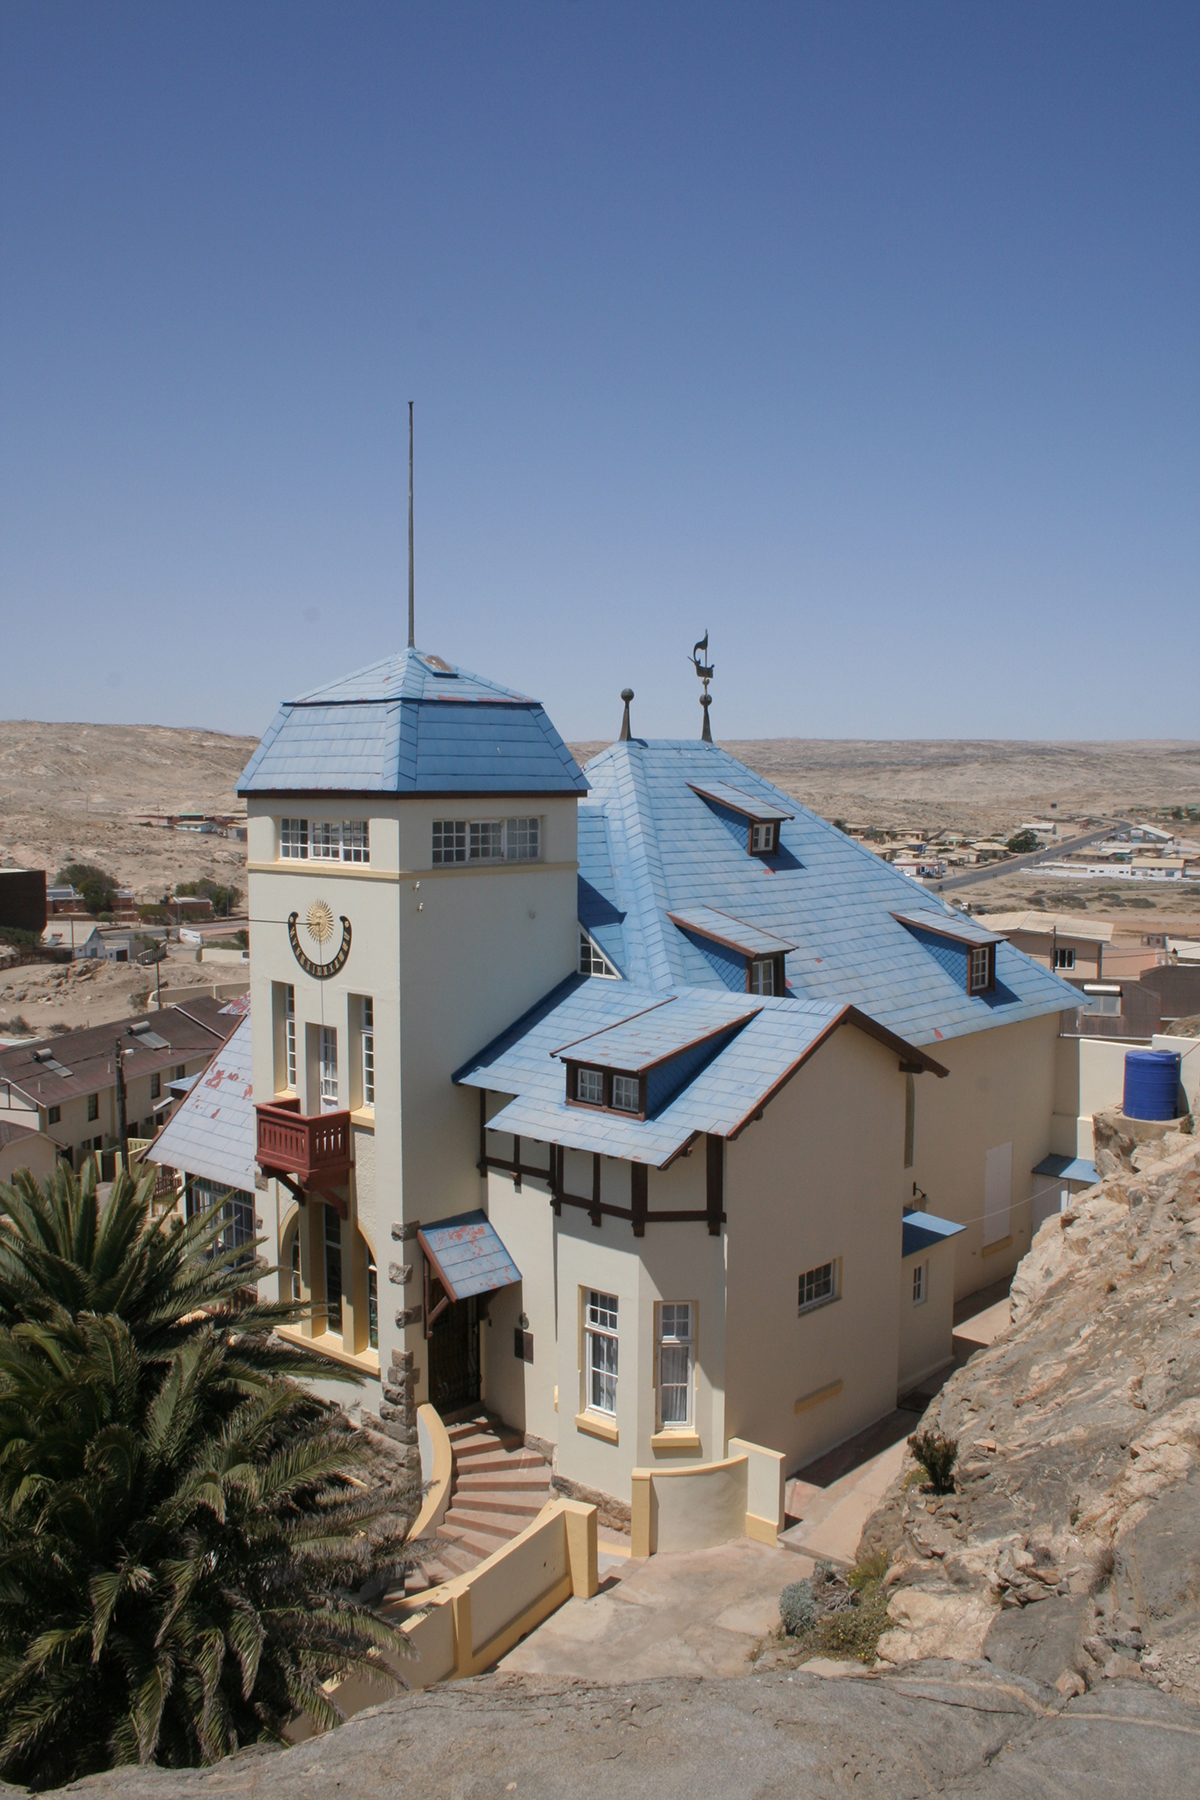 Goerke Haus in Lüderitz. Nationales Denkmal.